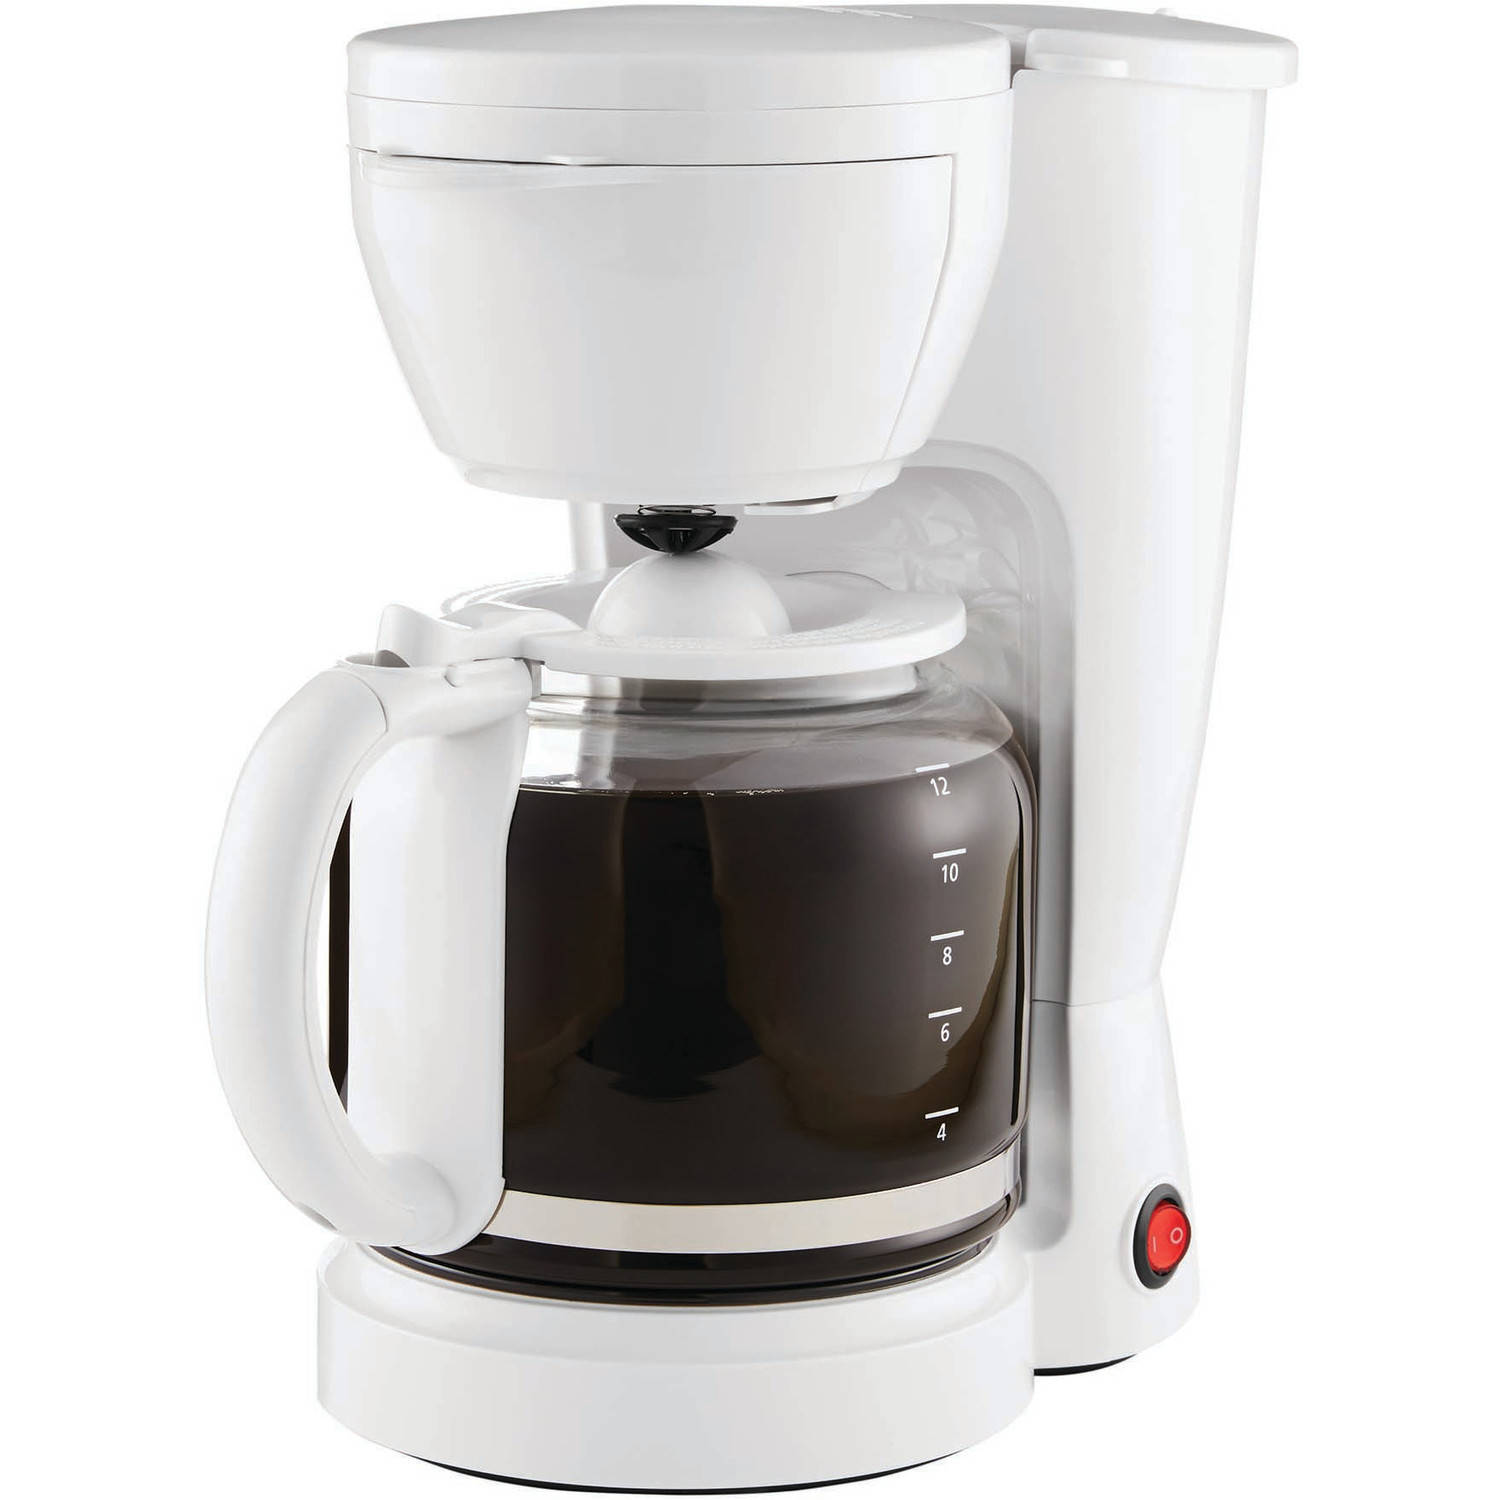 Black amp decker 12 cup coffee maker free shipping on orders over 45 - Black Amp Decker 12 Cup Coffee Maker Free Shipping On Orders Over 45 57